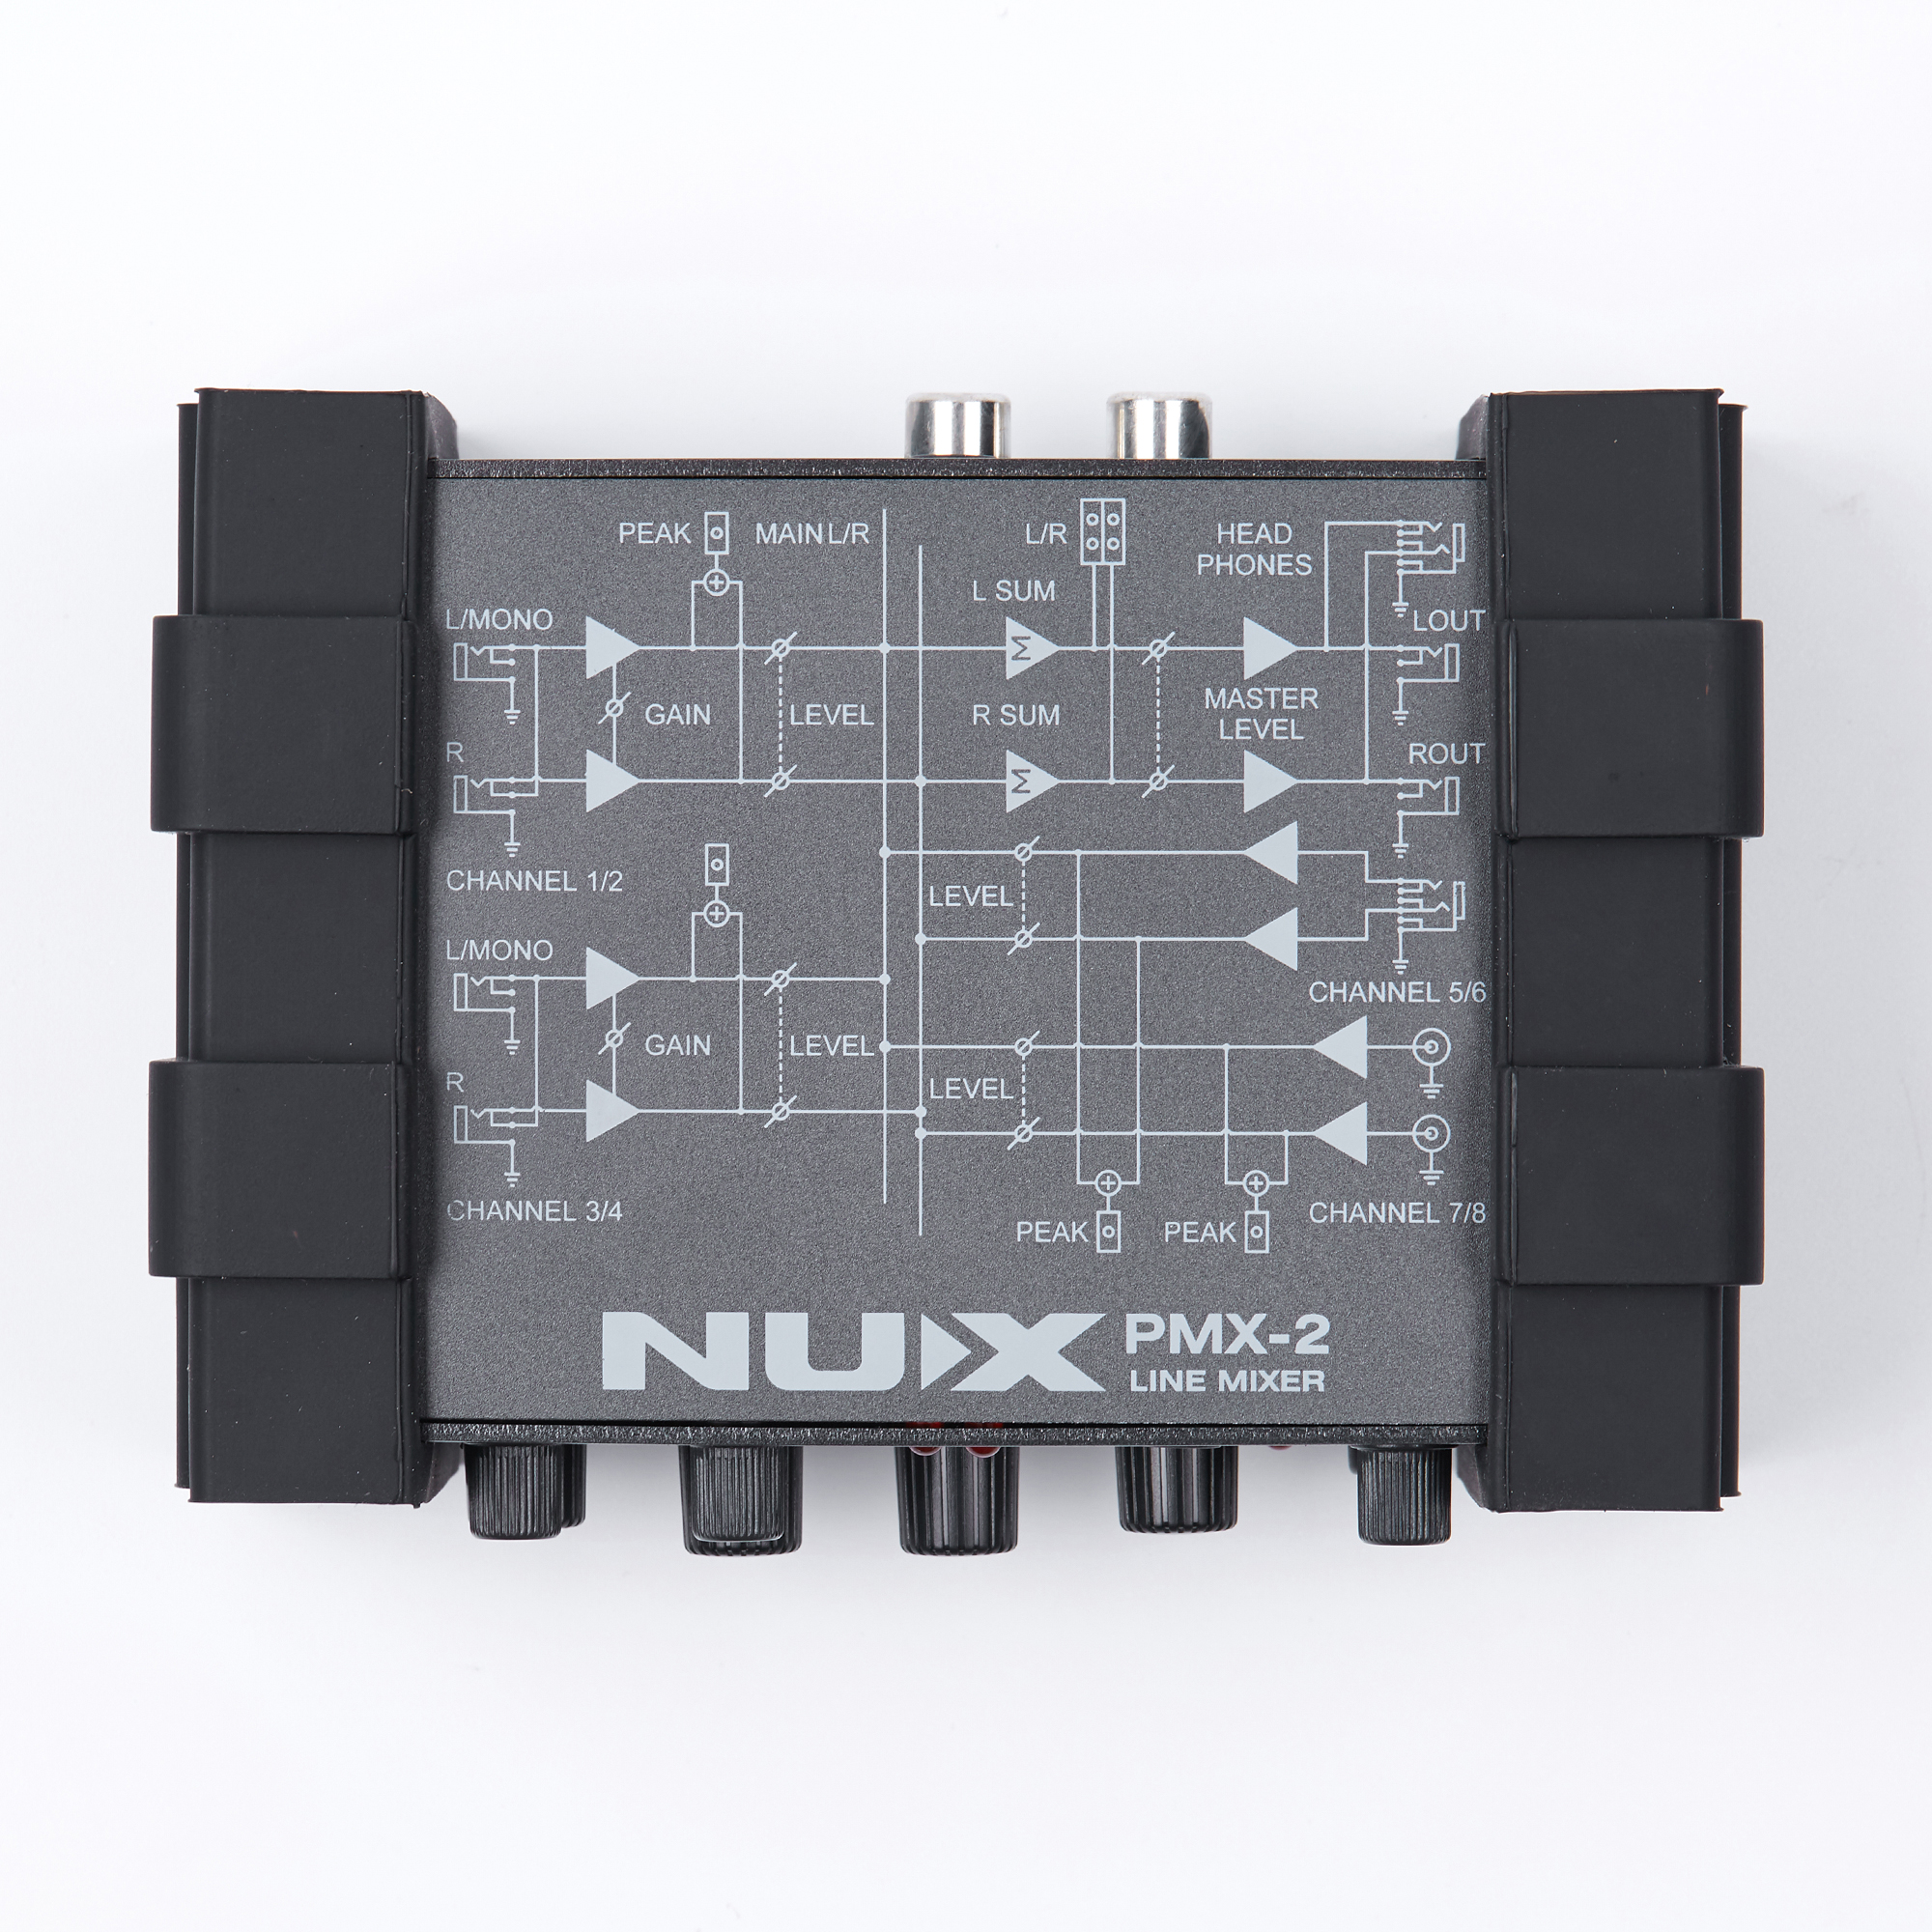 Gain Control 8 Inputs and 2 Outputs NUX PMX-2 Multi-Channel Mini Mixer 30 Musical Instruments Accessories for Guitar Bass Player пульт ду citilux clr01 3w